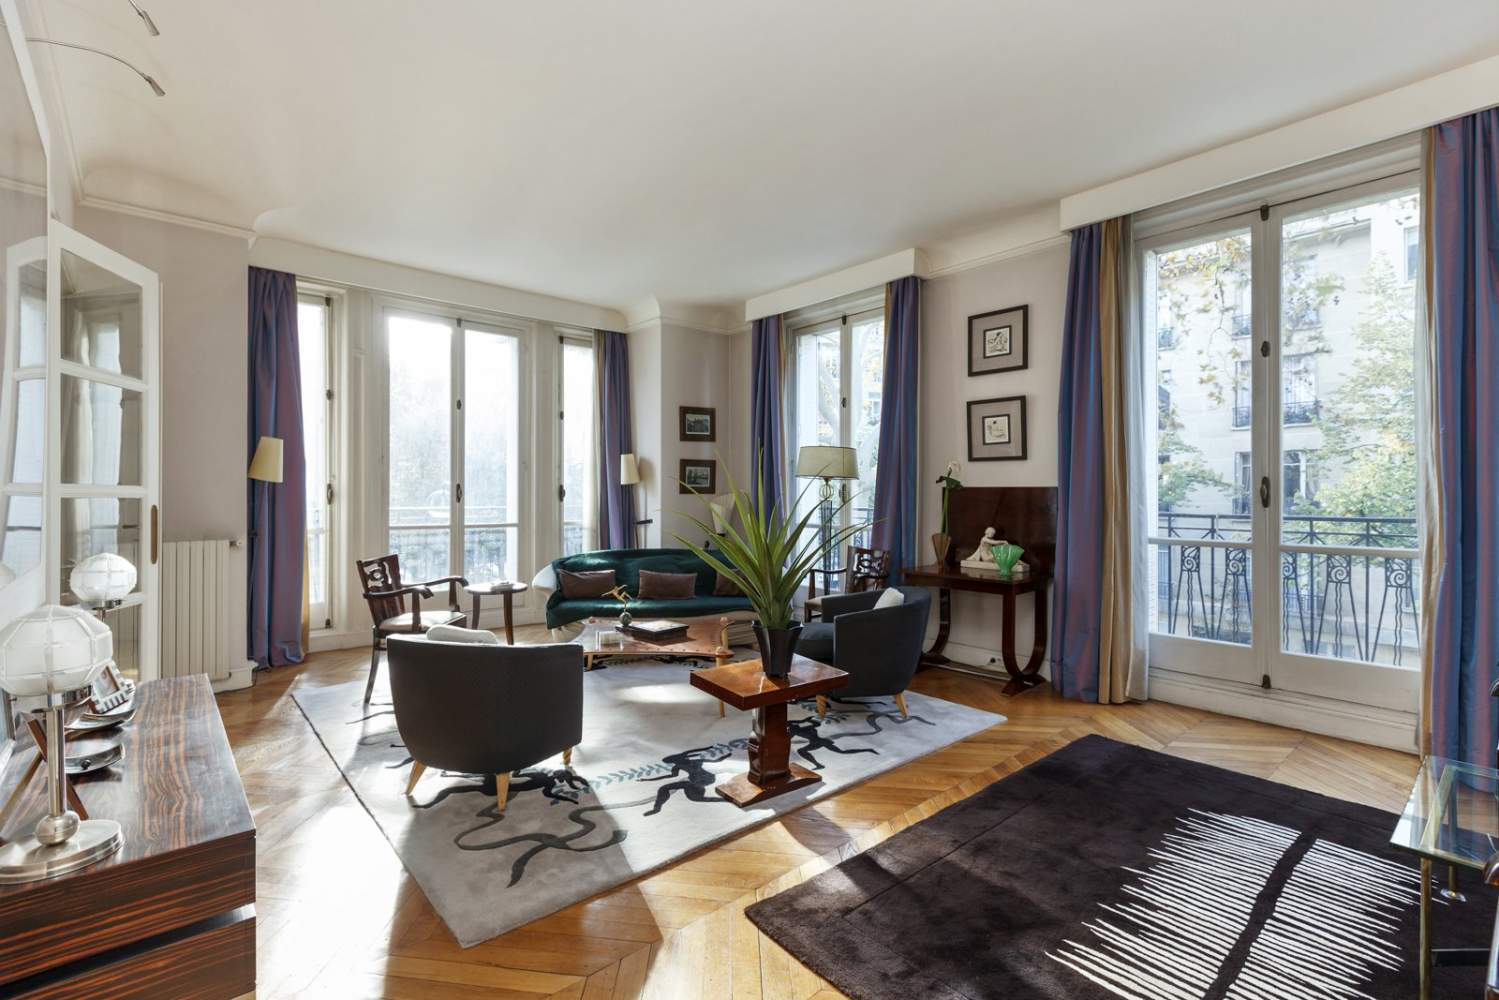 Acheter Appartement Paris 11 Vente Appartement Paris 7 Motte Picquet Ecole Militaire 4